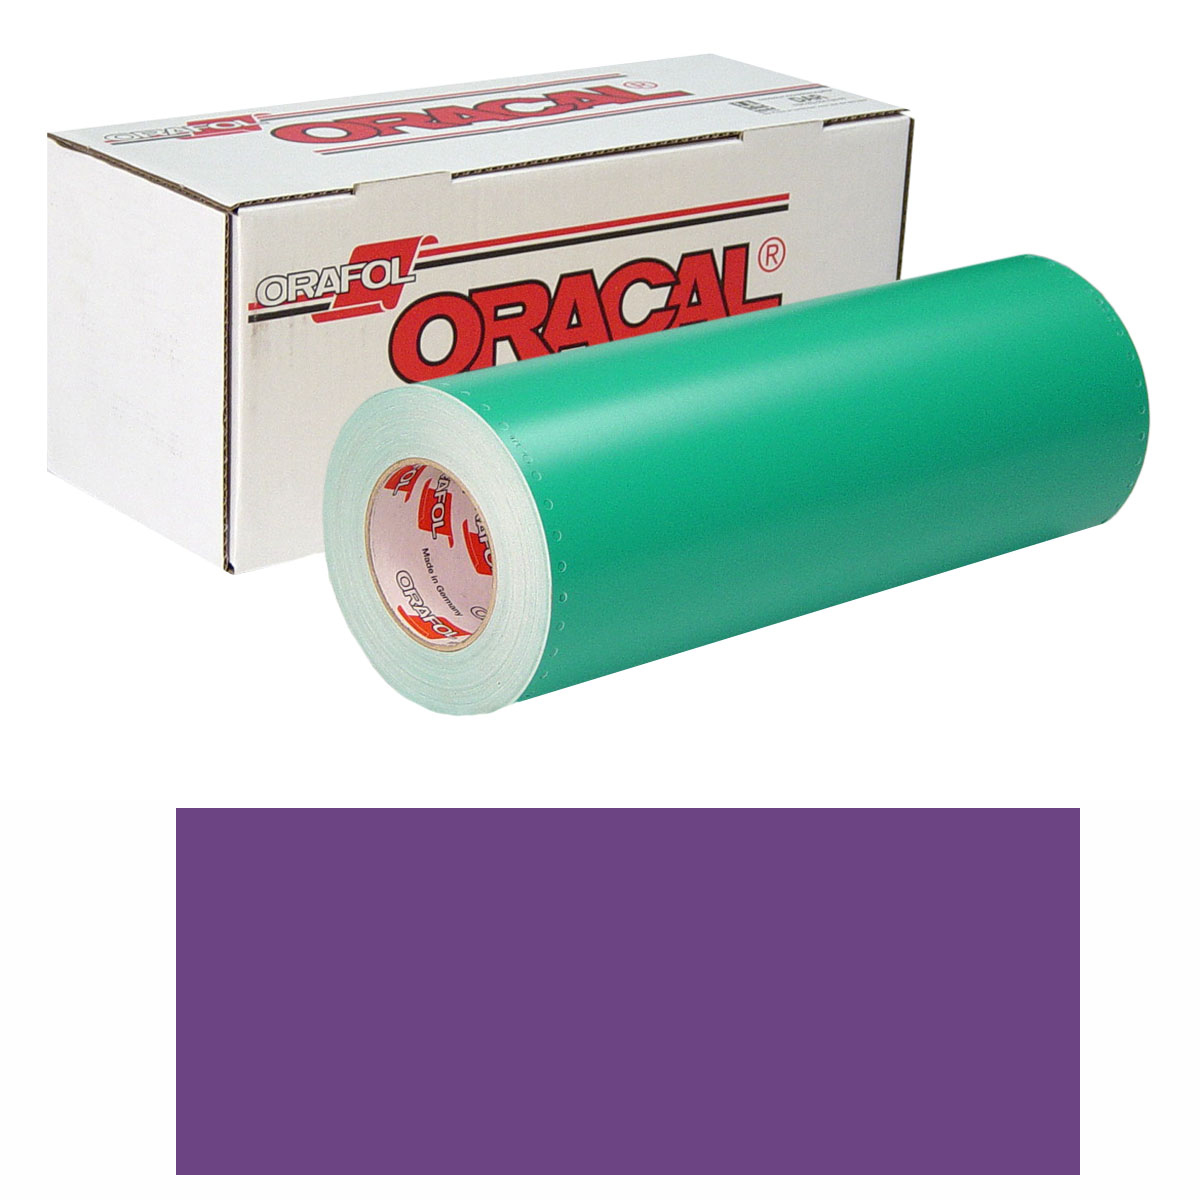 ORACAL 8500 15In X 10Yd 040 Violet